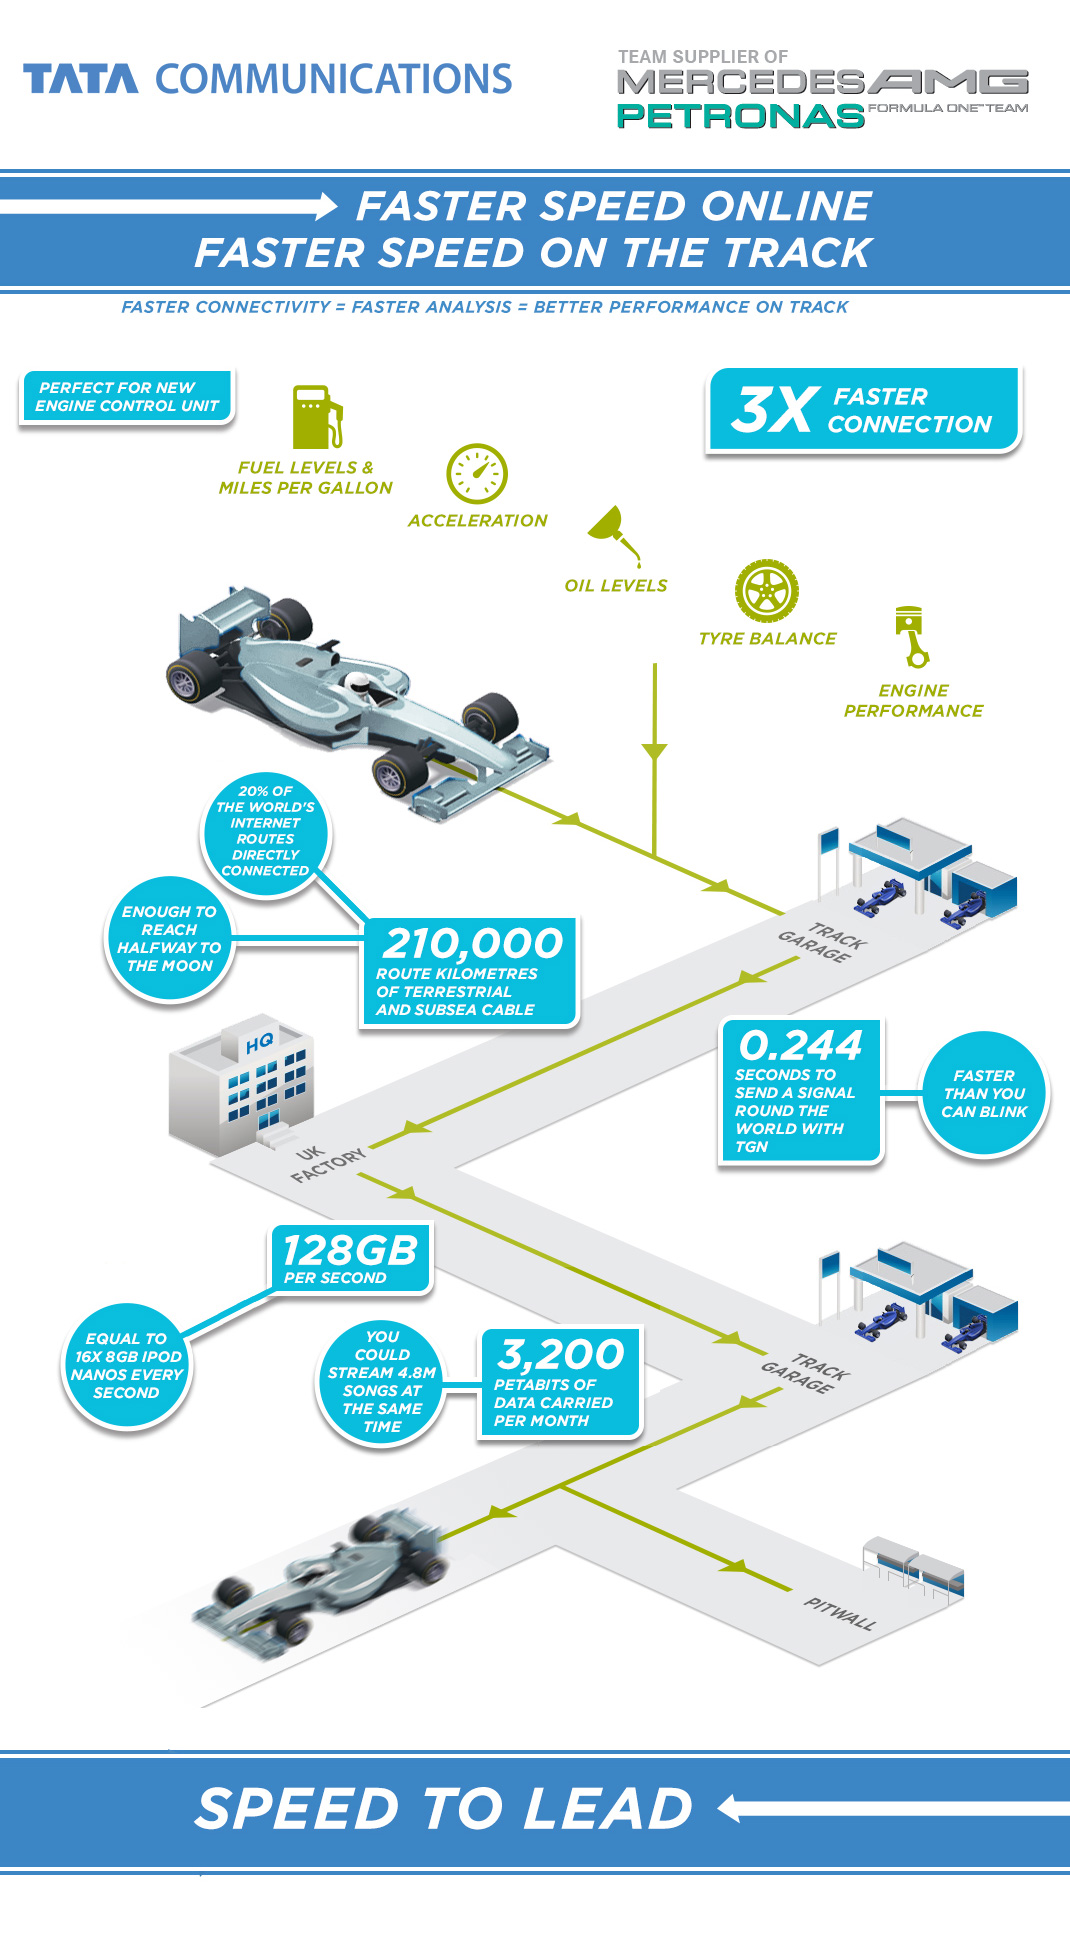 Infographic_MERCEDES AMG PETRONAS LINKS UP WITH TATA COMMUNICATIONS